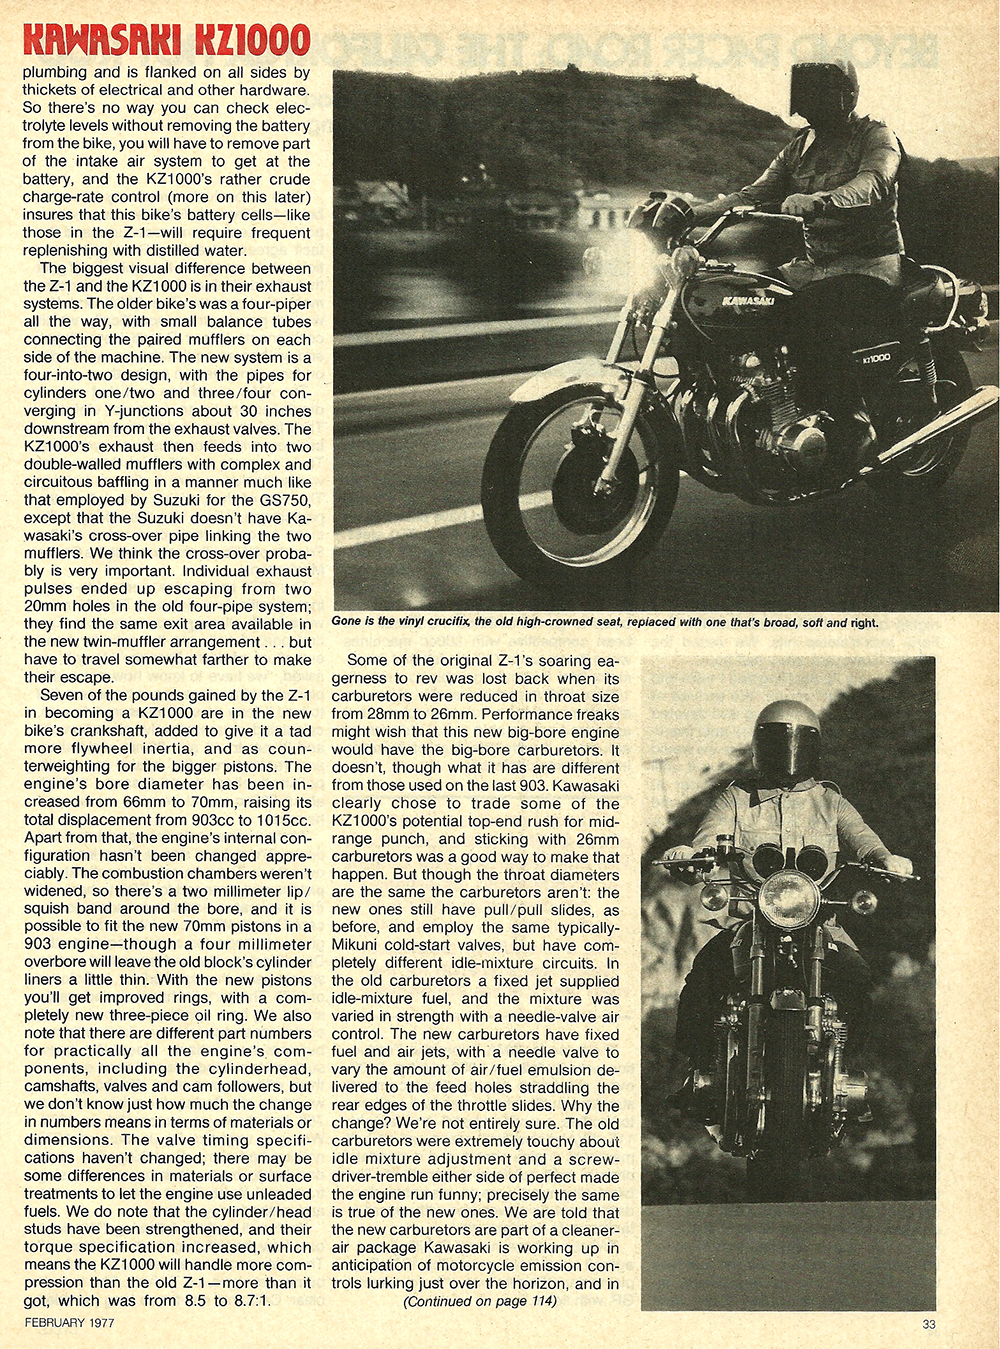 1977 Kawasaki KZ1000 road test 6.jpg